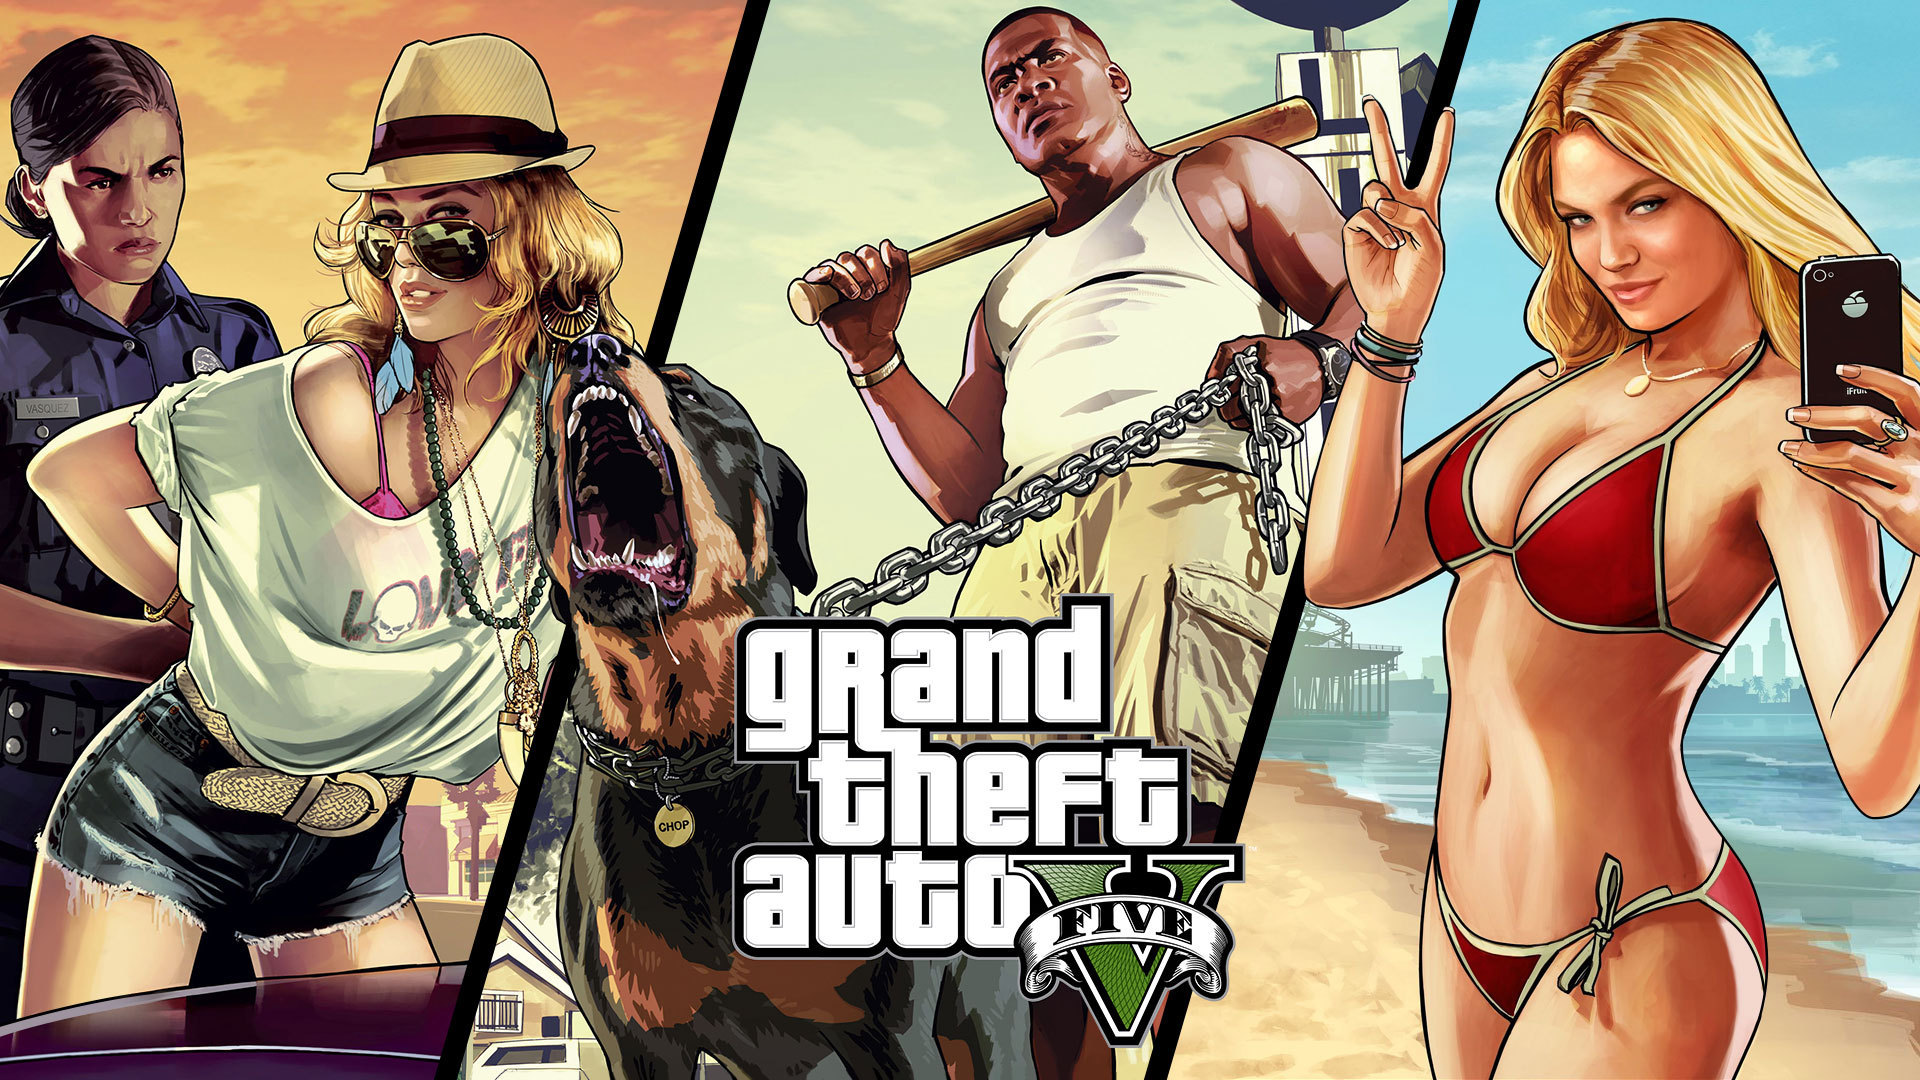 GTA5 fifa14 promotion price minister